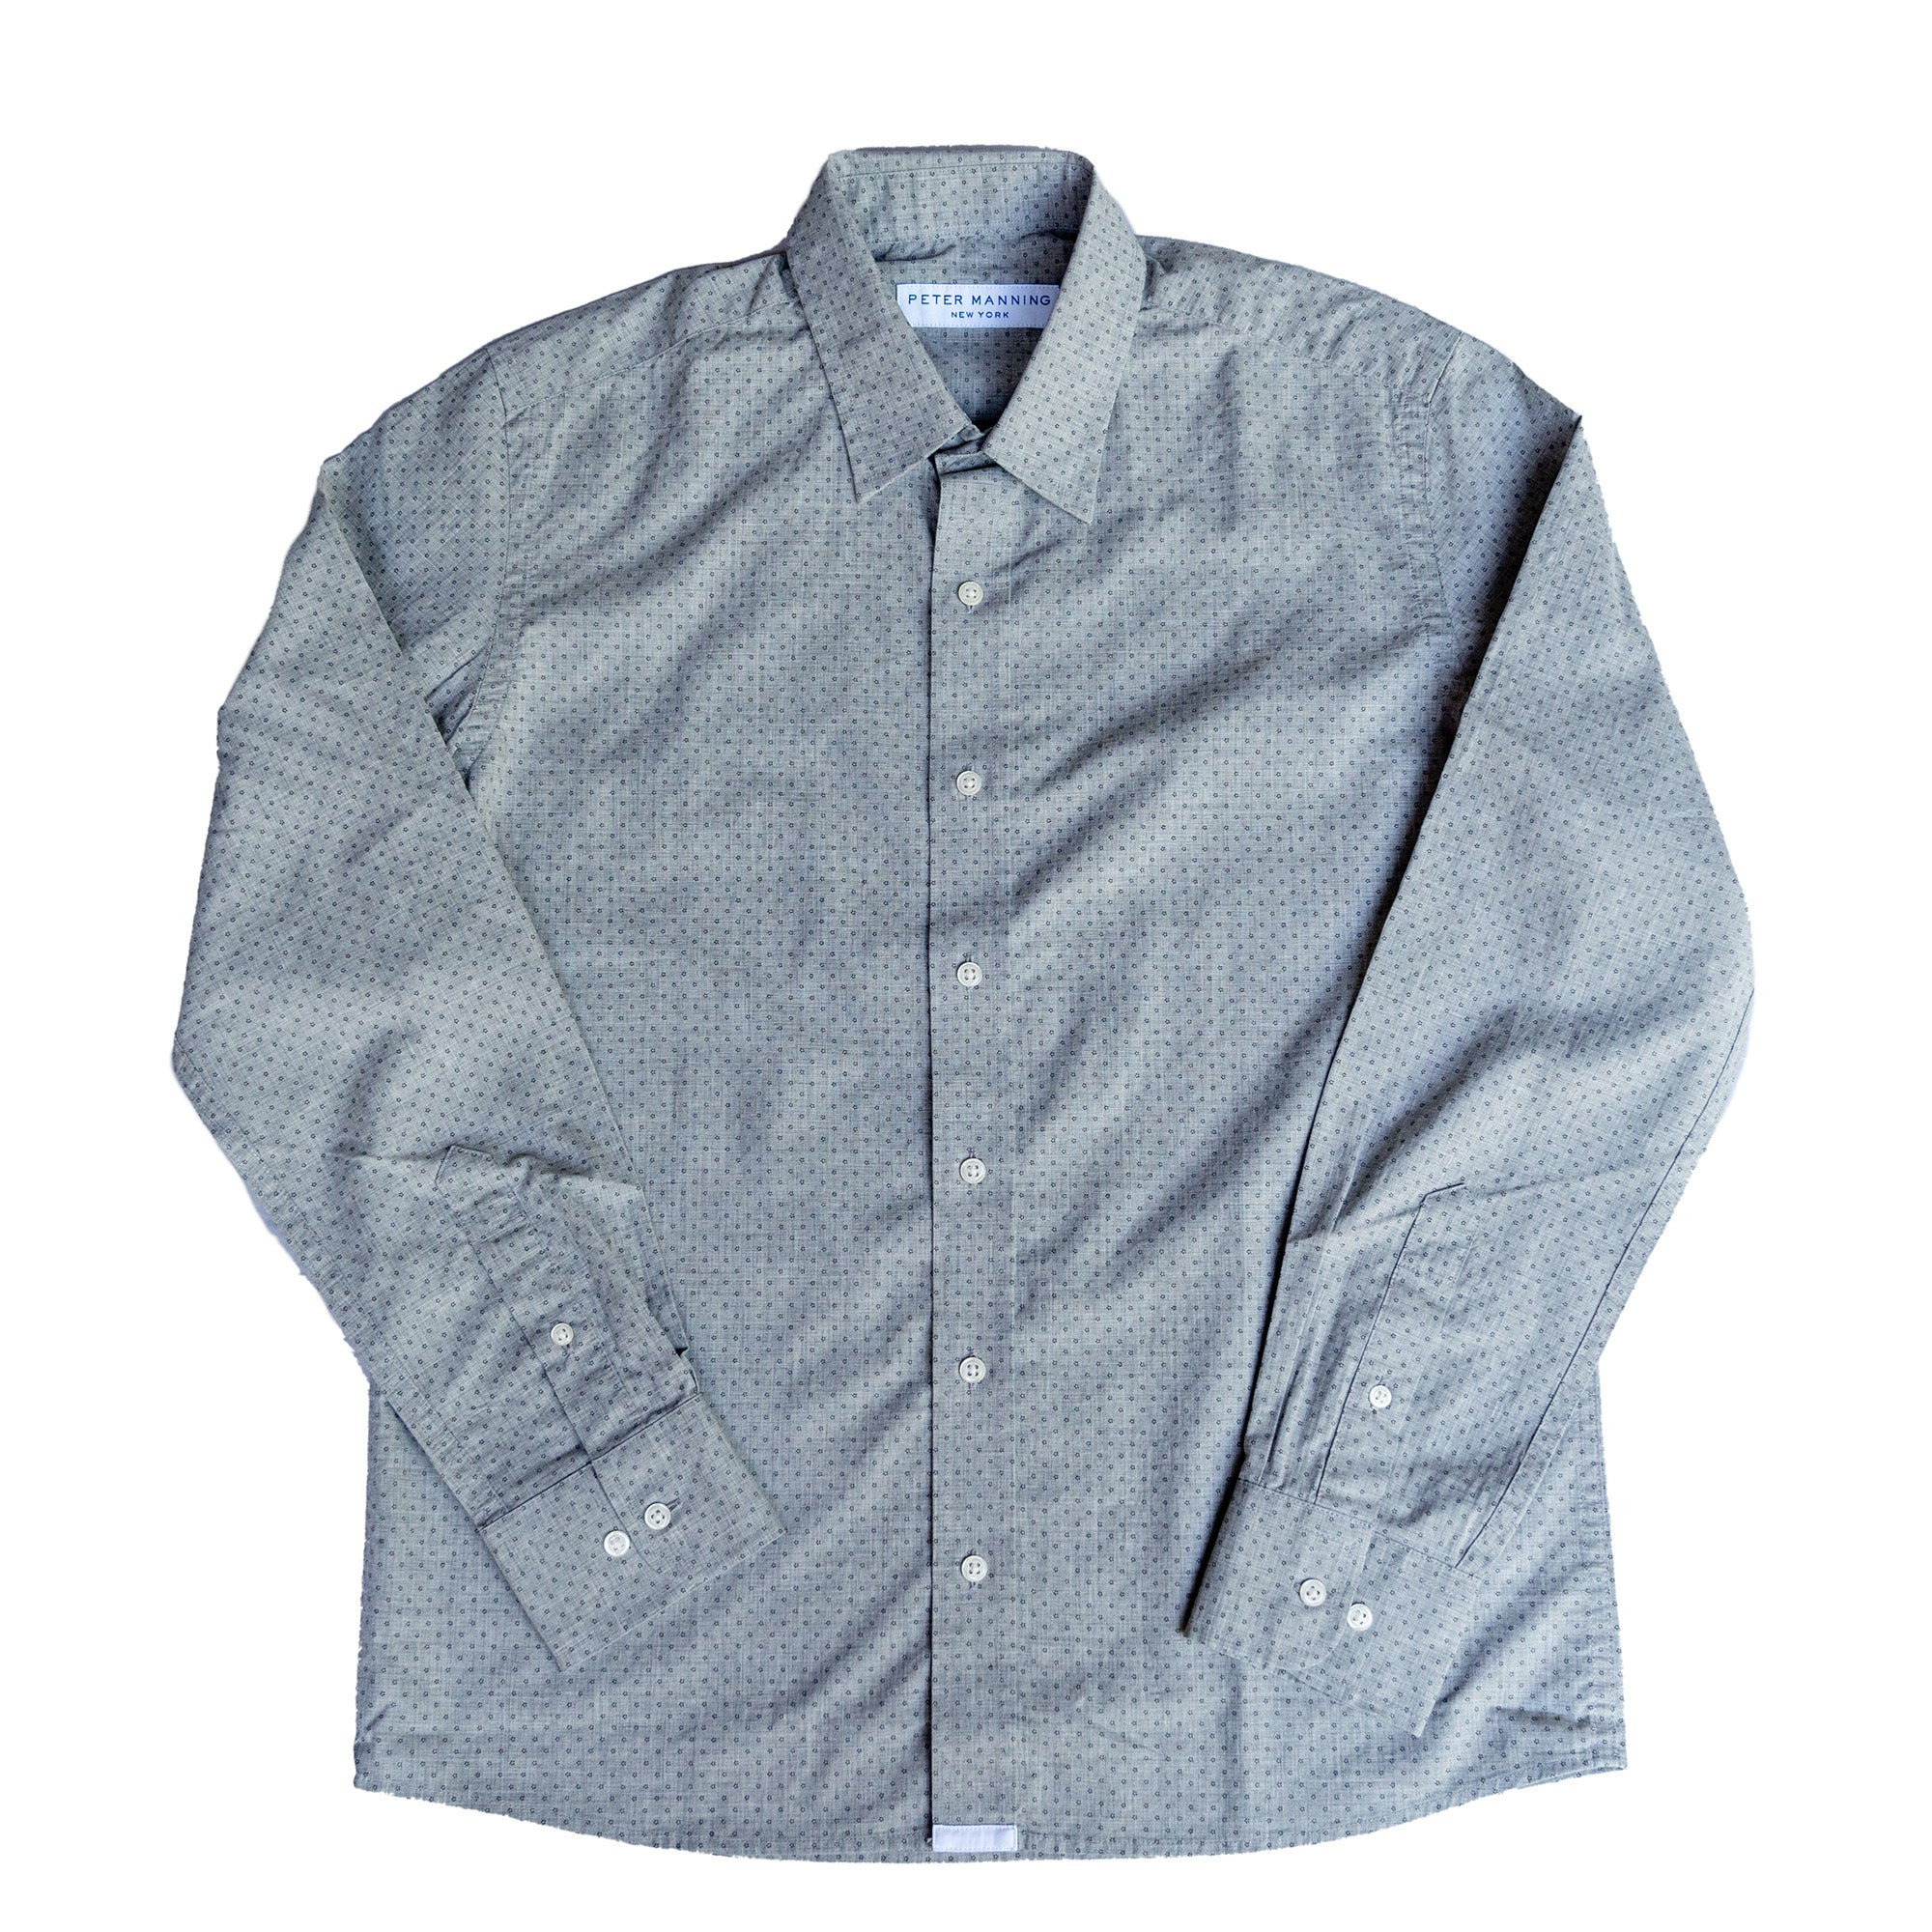 Weekend Printed Shirt Standard Fit - Grey Dot